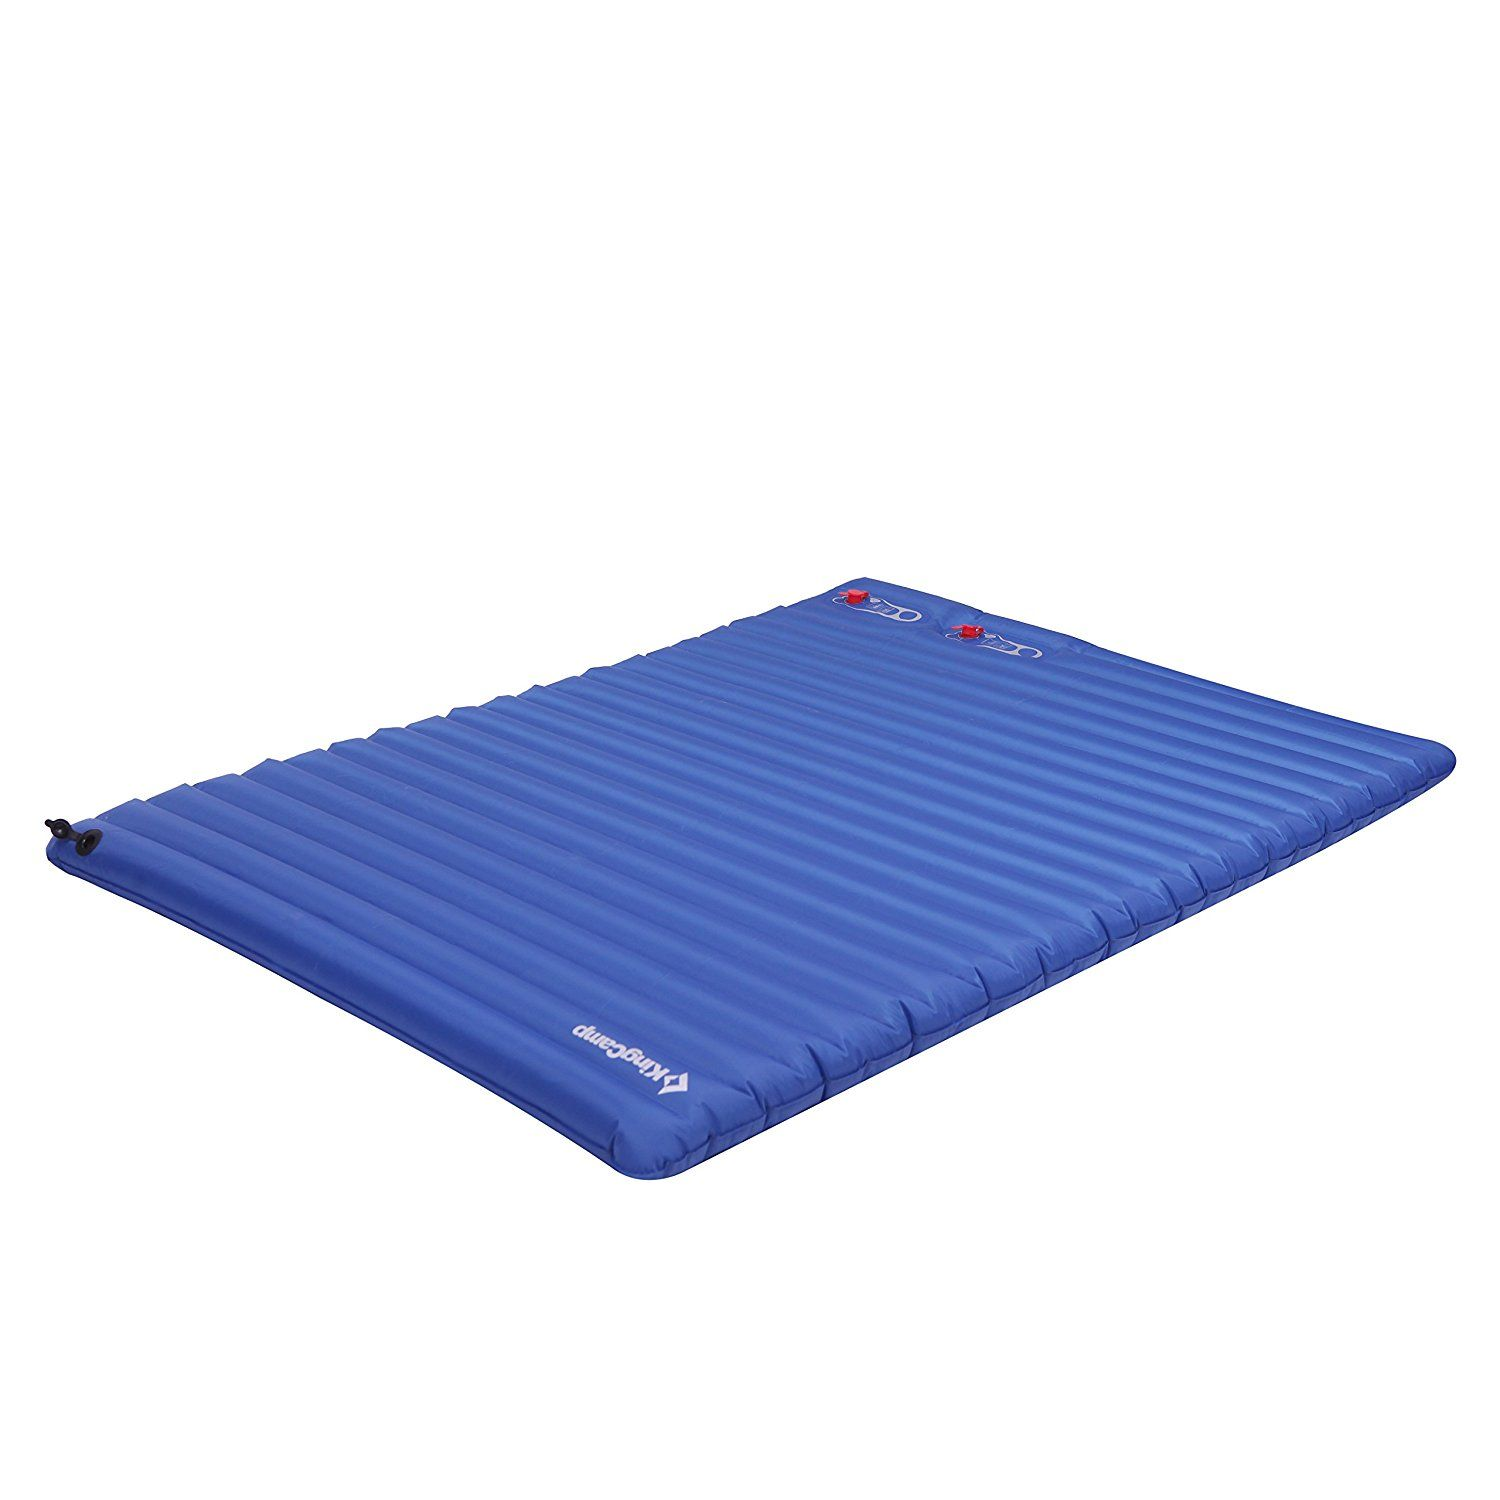 Twin Inflatable Airbed Mattress Camping Portable Guest Bed Blow Up Sleeping Pad